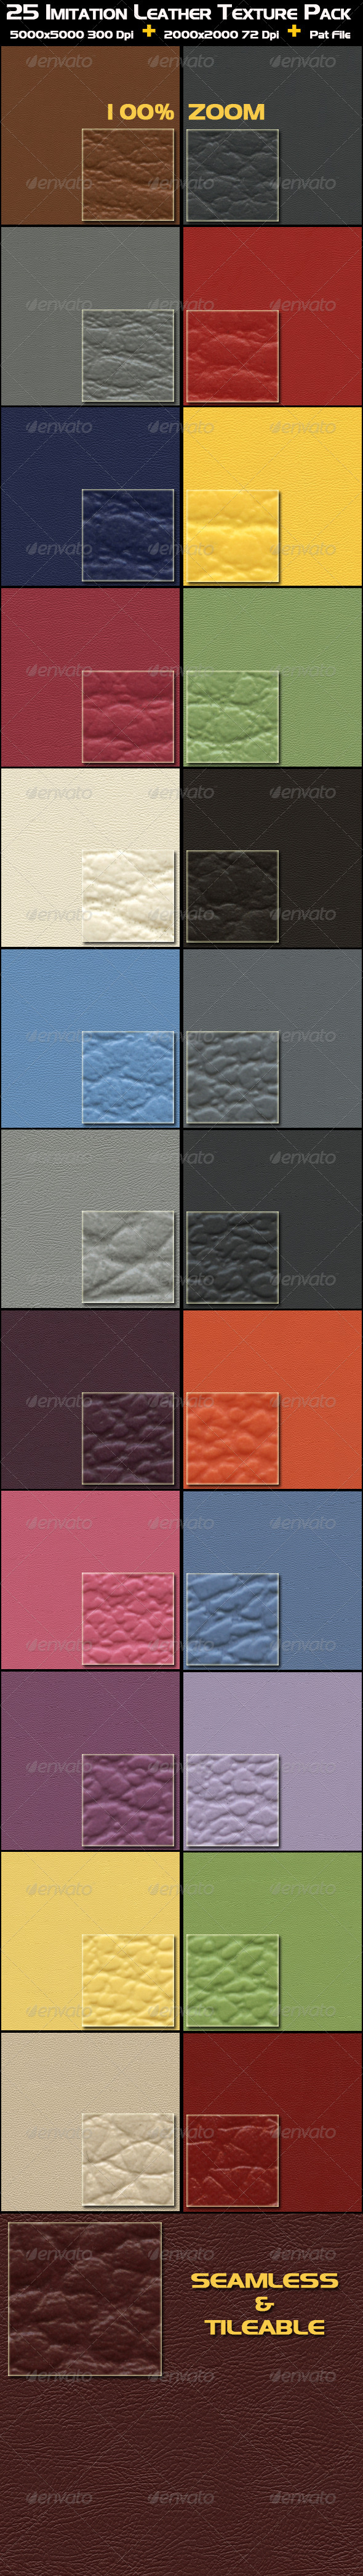 GraphicRiver 25 Imitation Leather Texture Pack 4475307